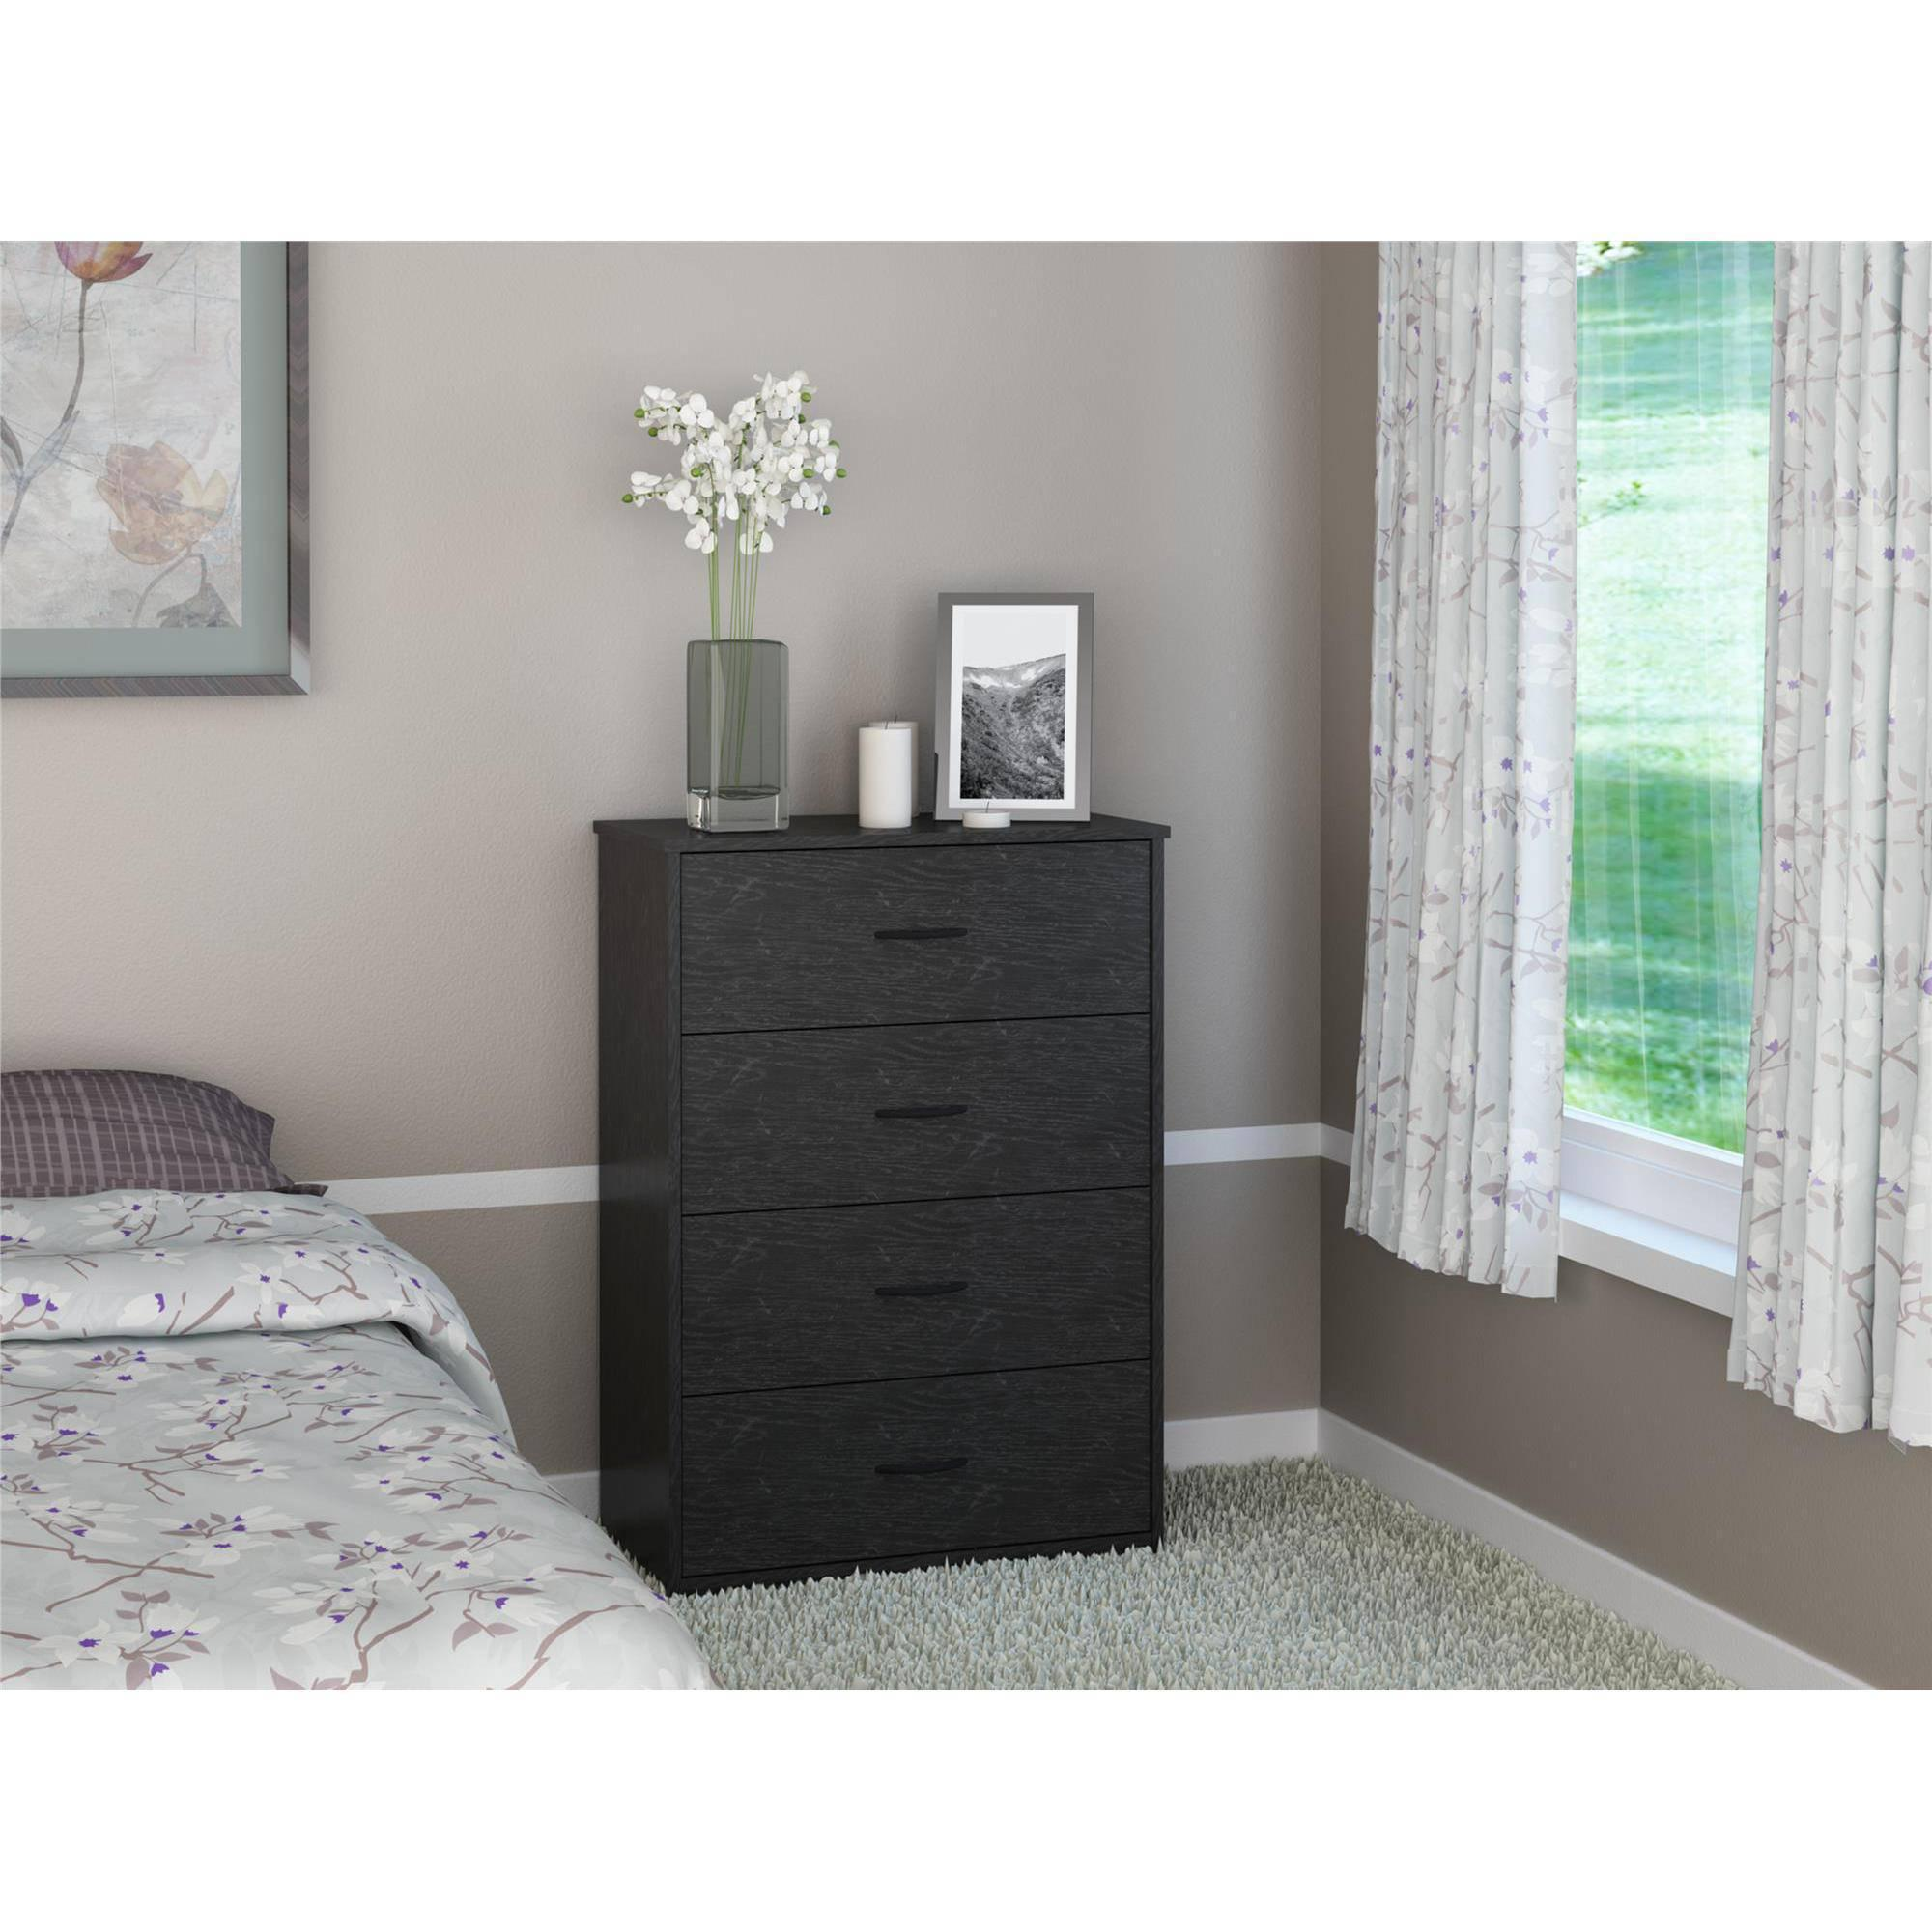 Mainstays bedroom storage dresser chest 4 drawer modern - Contemporary bedroom chest of drawers ...